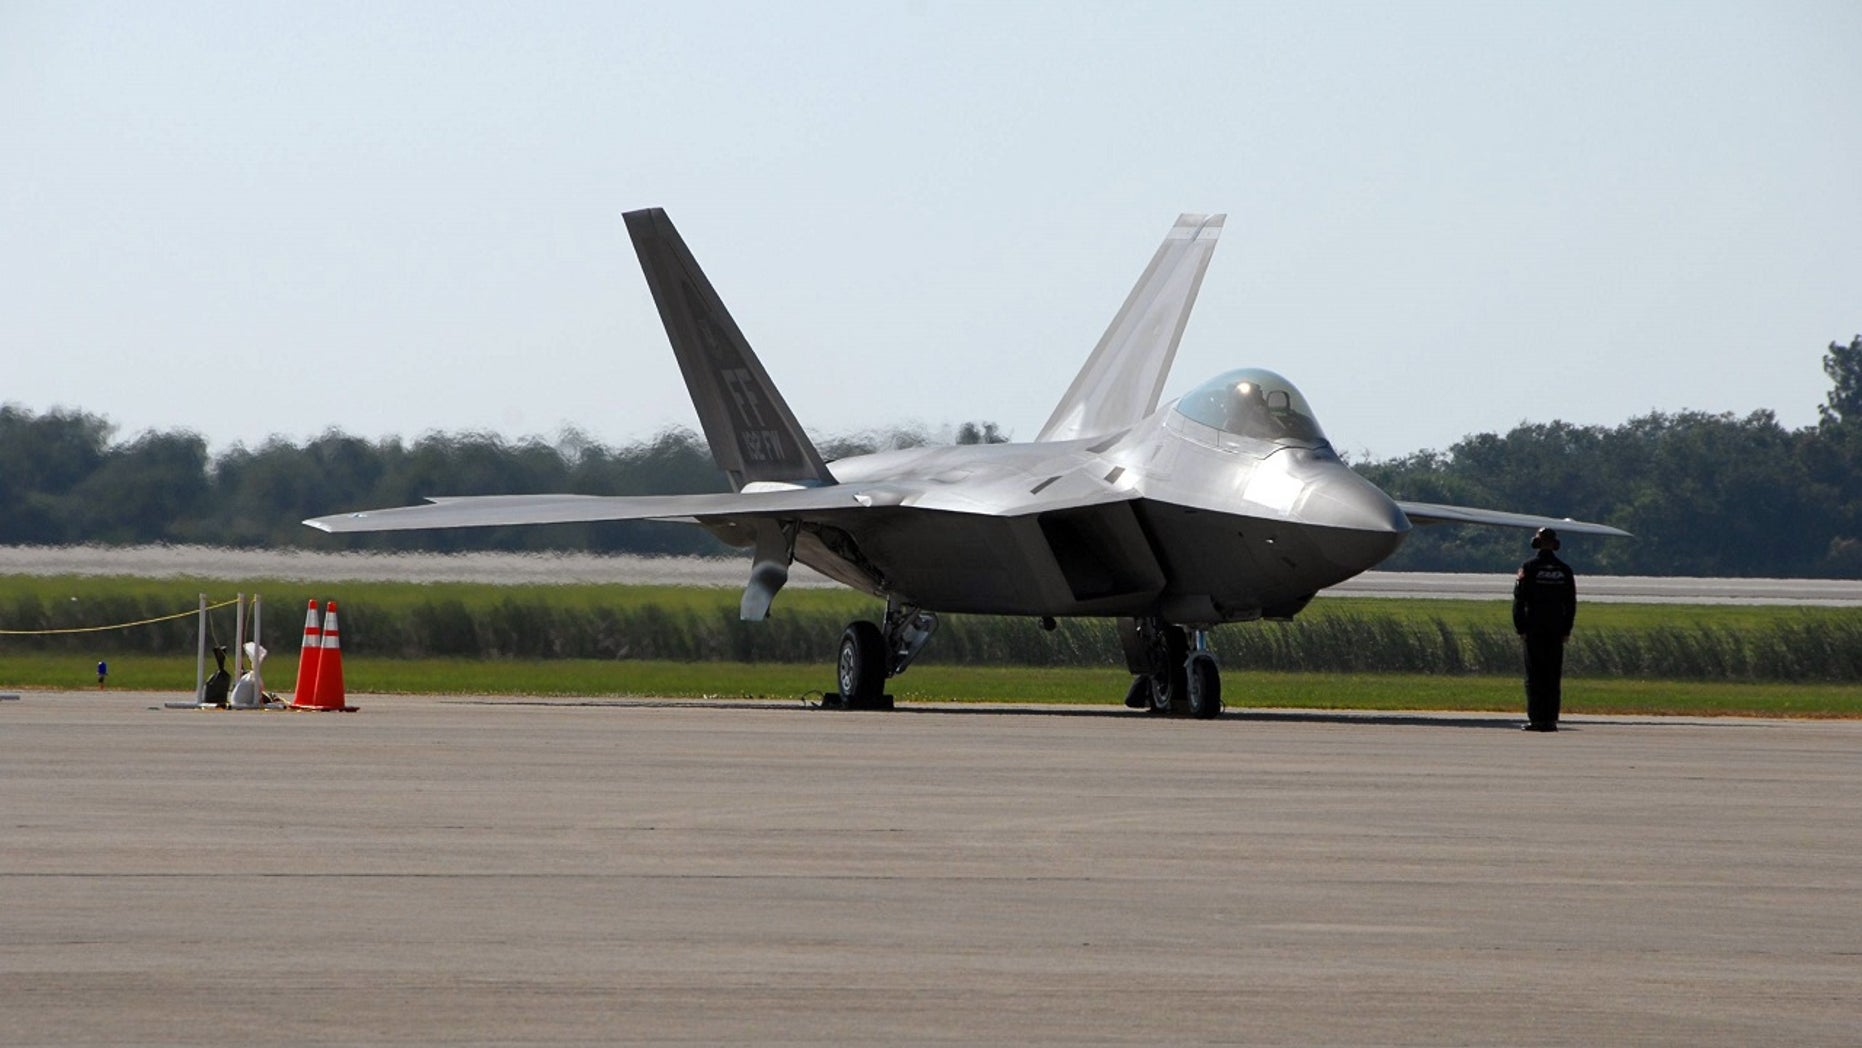 An F-22 Raptor skid the runway of a Naval Air Station earlier this year because of inadequate data, a new report found.